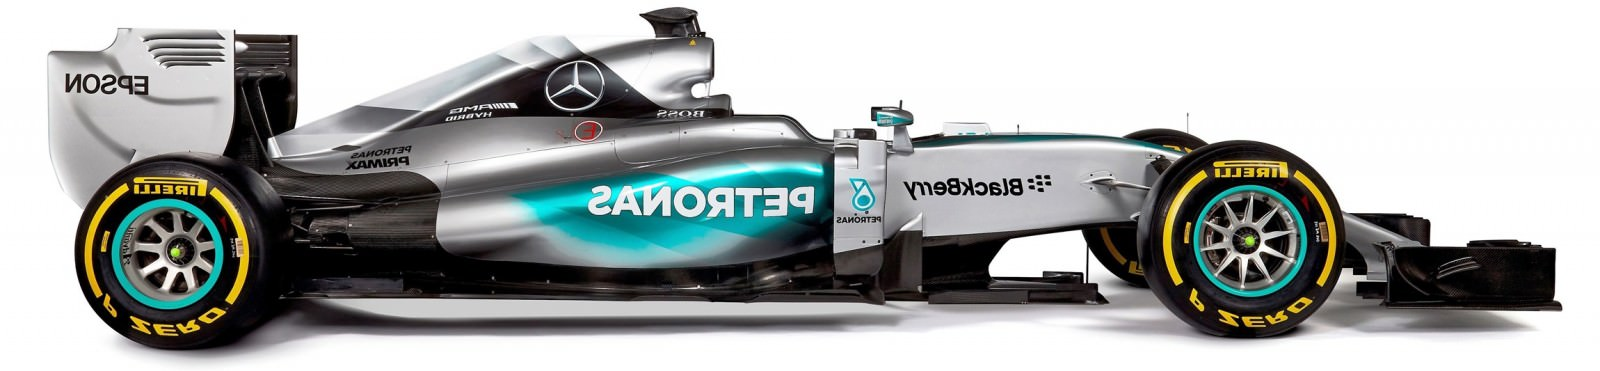 2015 F1 Cars Comparo - Infiniti RB11 vs McLaren-Honda MP4-30 vs AMG W06 vs Ferrari SF15T 40